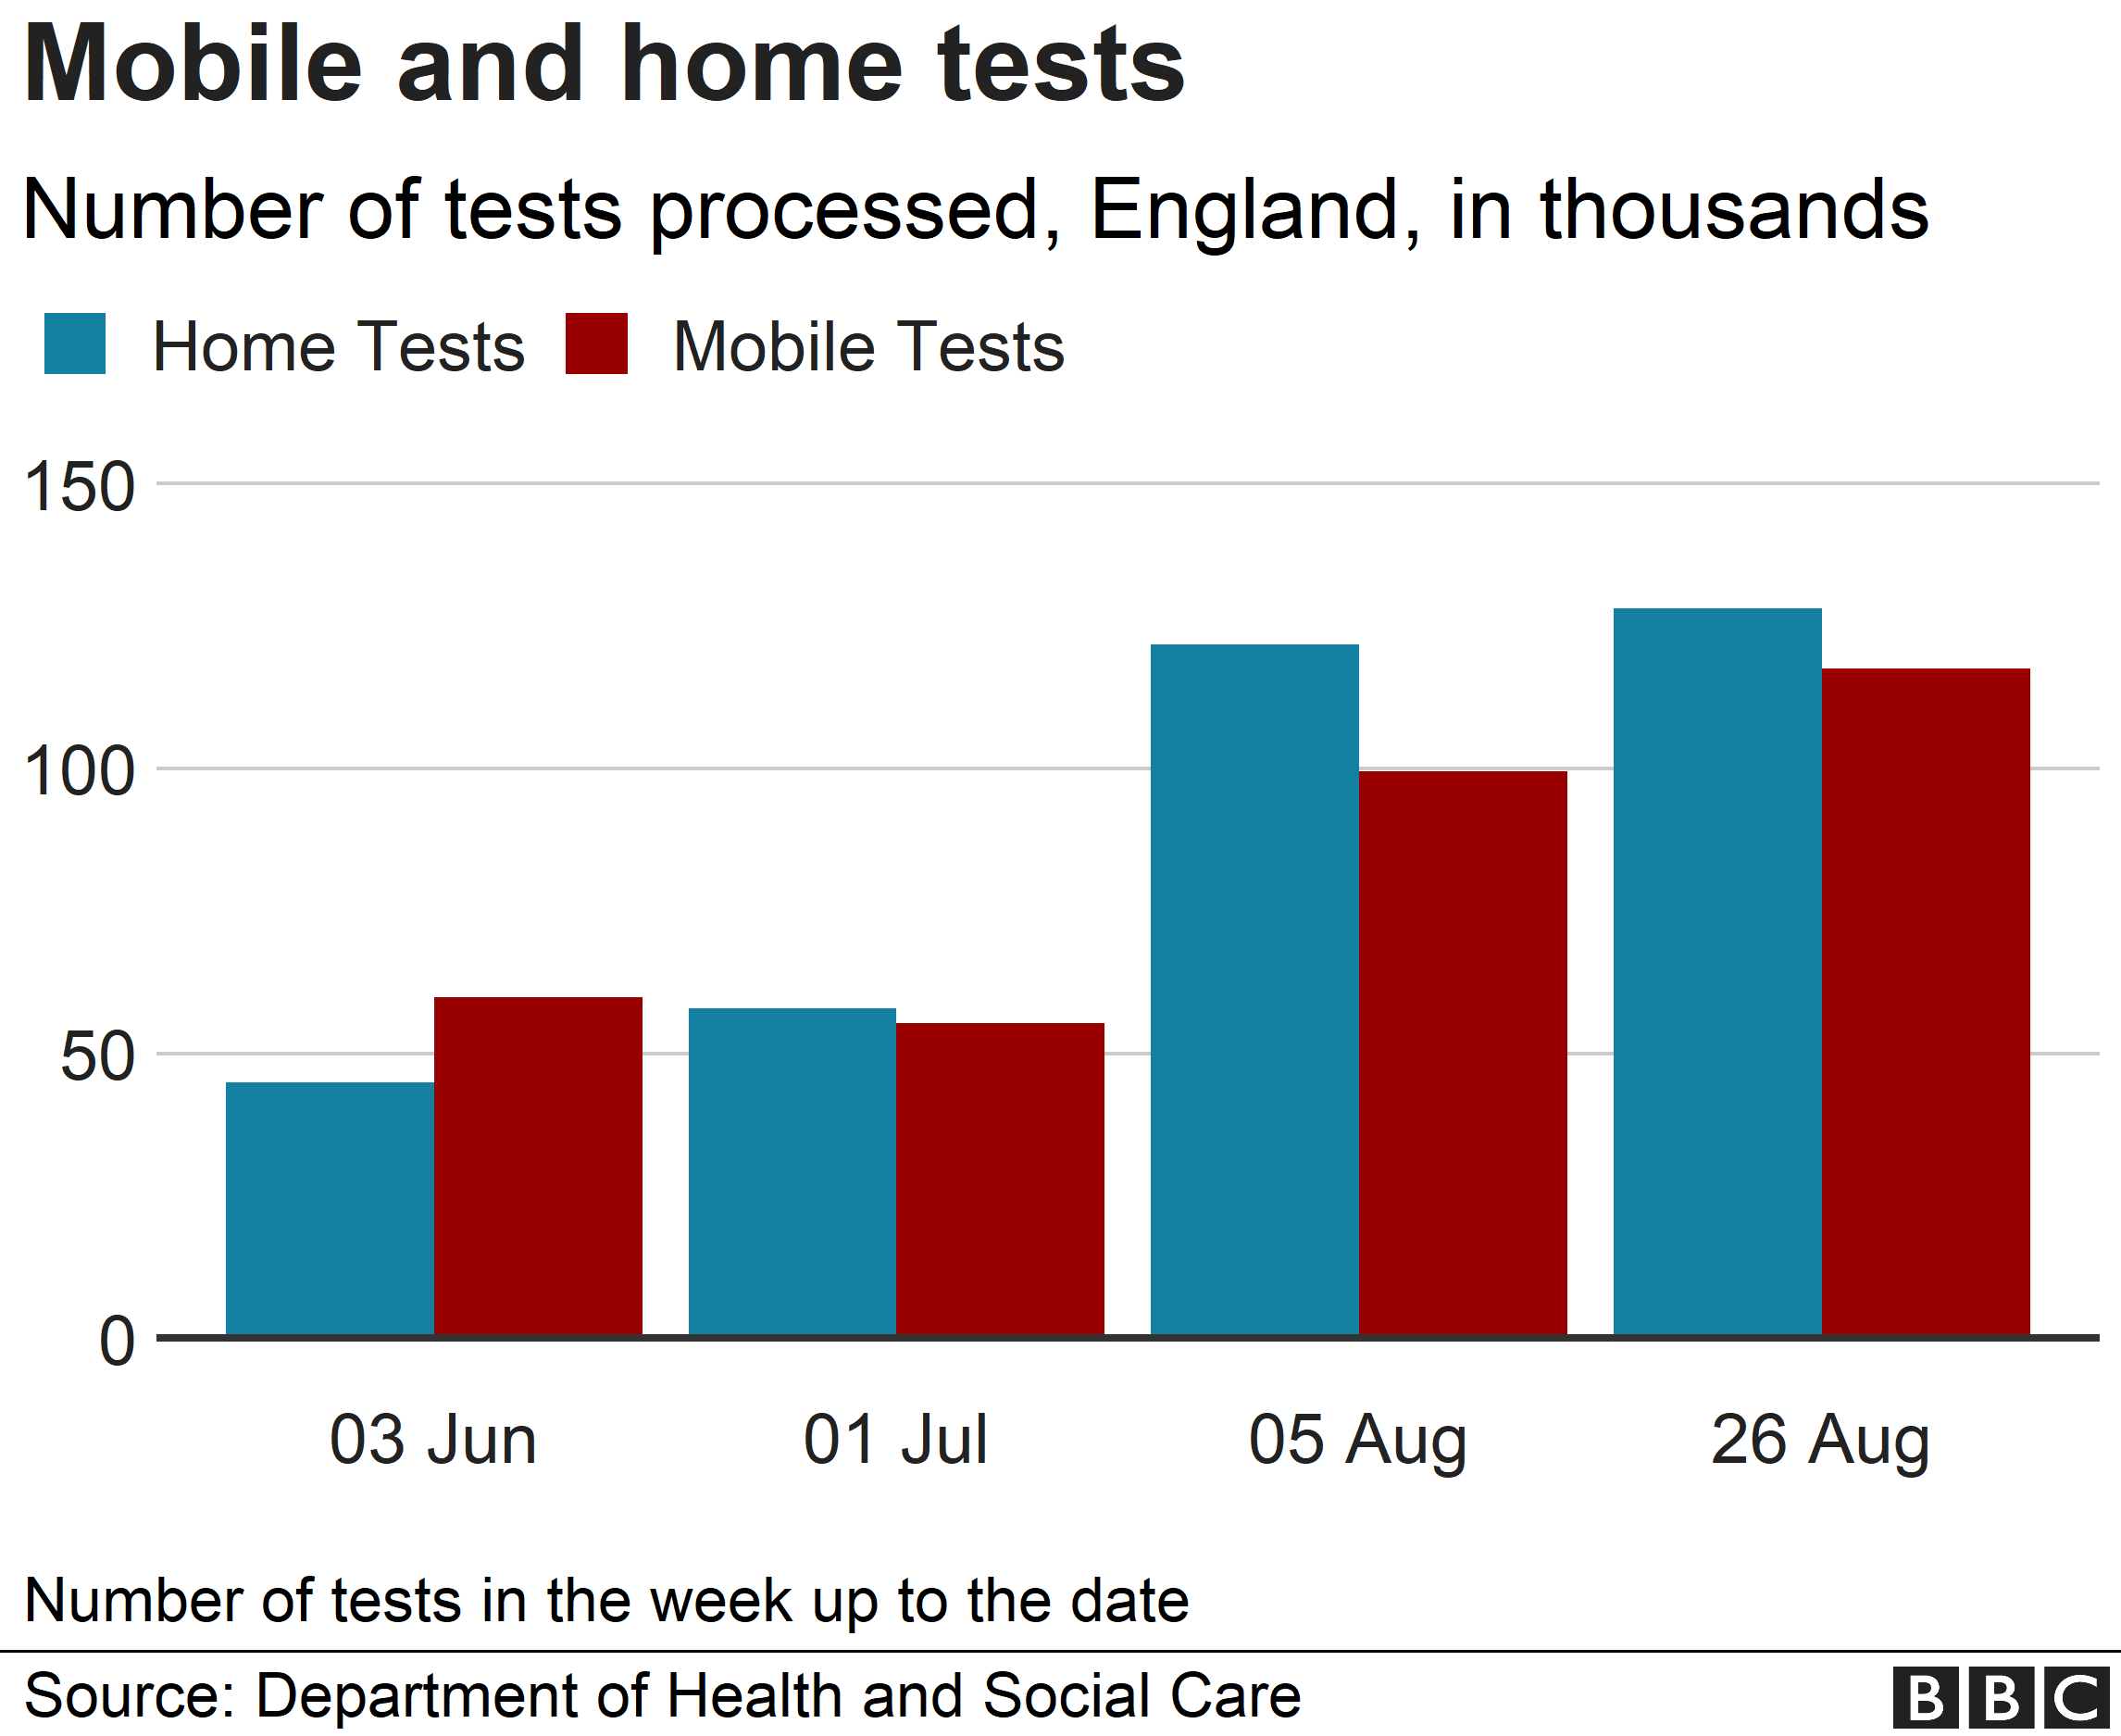 Chart showing mobile and home tests